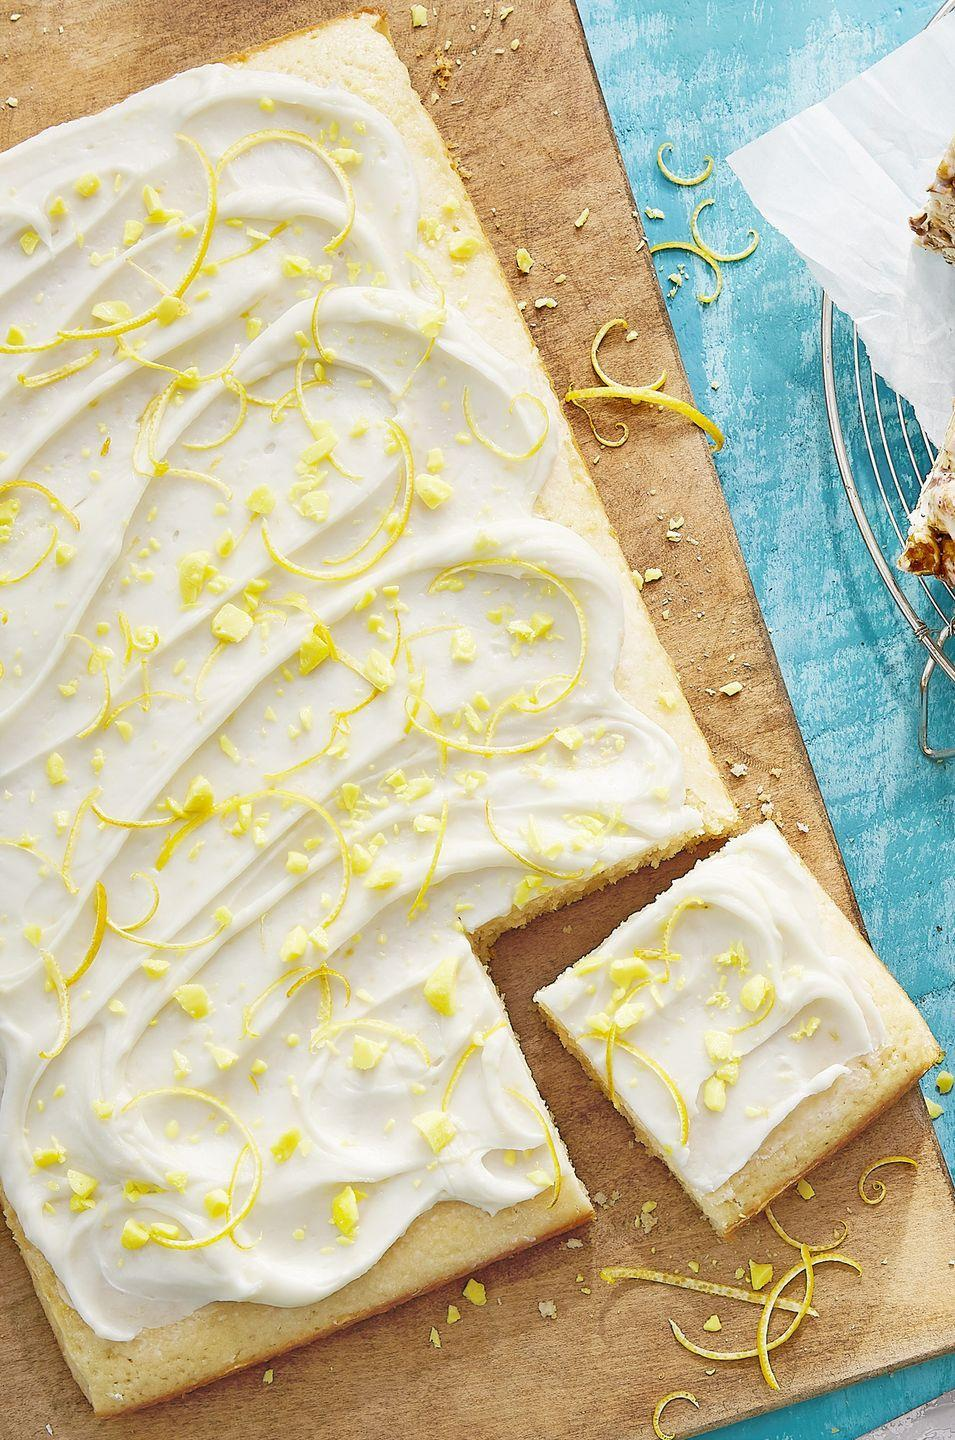 """<p>Topped with a lemony cream cheese frosting, this citrusy cake is the perfect balance between tangy and sweet.</p><p>Get the recipe from <a href=""""https://www.delish.com/cooking/recipes/a53093/dukes-lemon-drop-sheet-cake-recipe/"""" rel=""""nofollow noopener"""" target=""""_blank"""" data-ylk=""""slk:Delish"""" class=""""link rapid-noclick-resp"""">Delish</a>. </p>"""